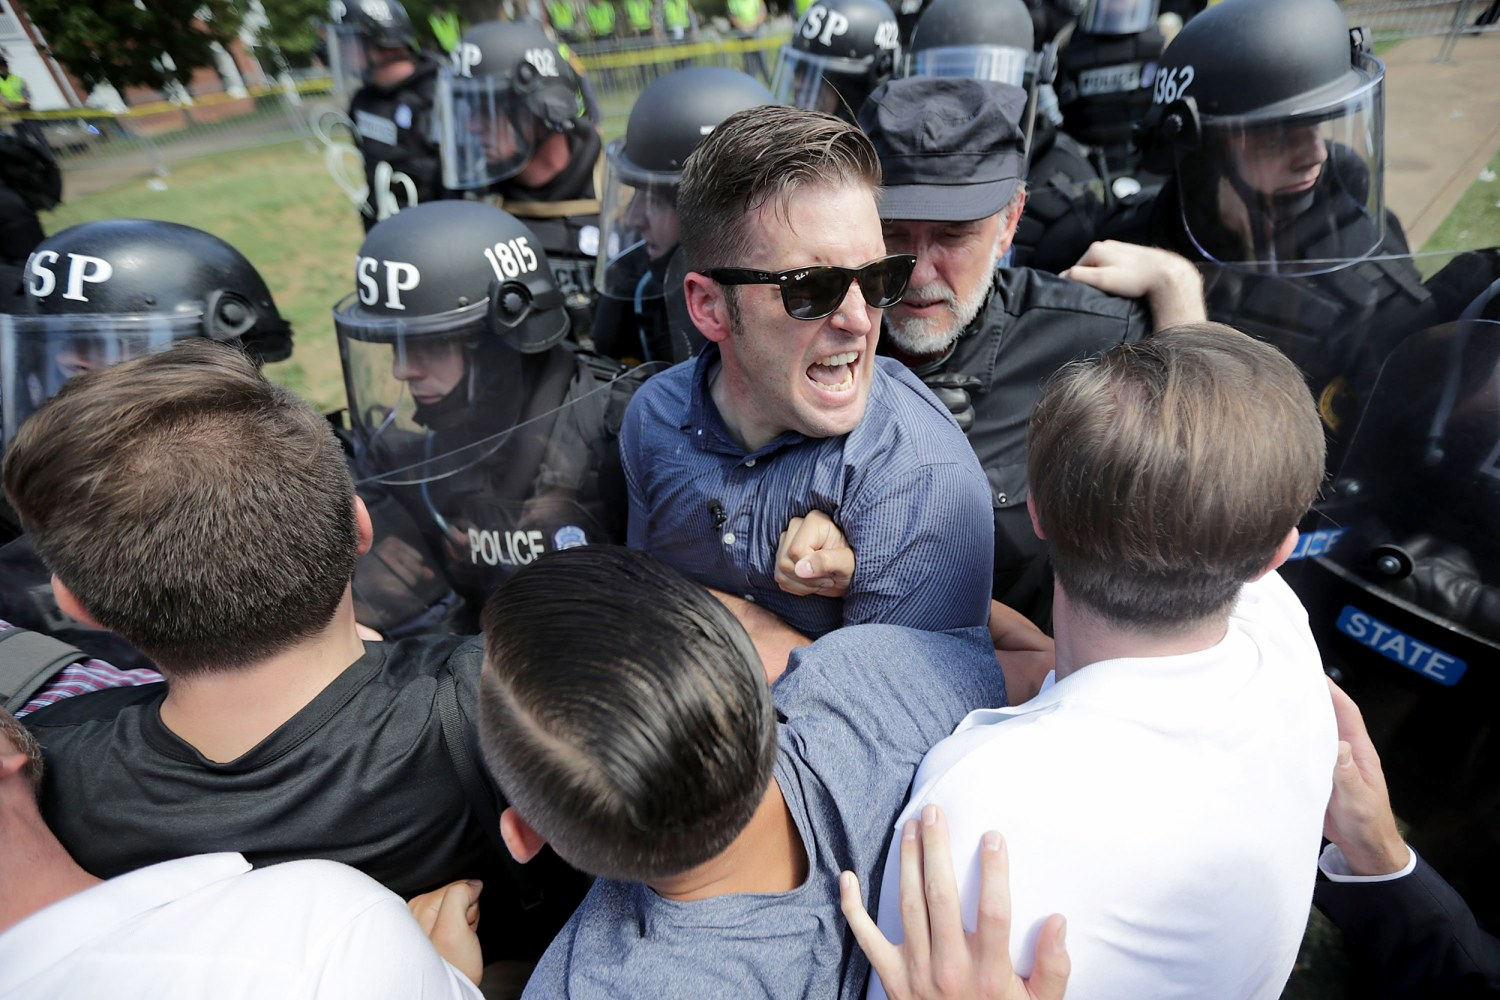 Protesters Converge on White Nationalist Richard Spencer Event